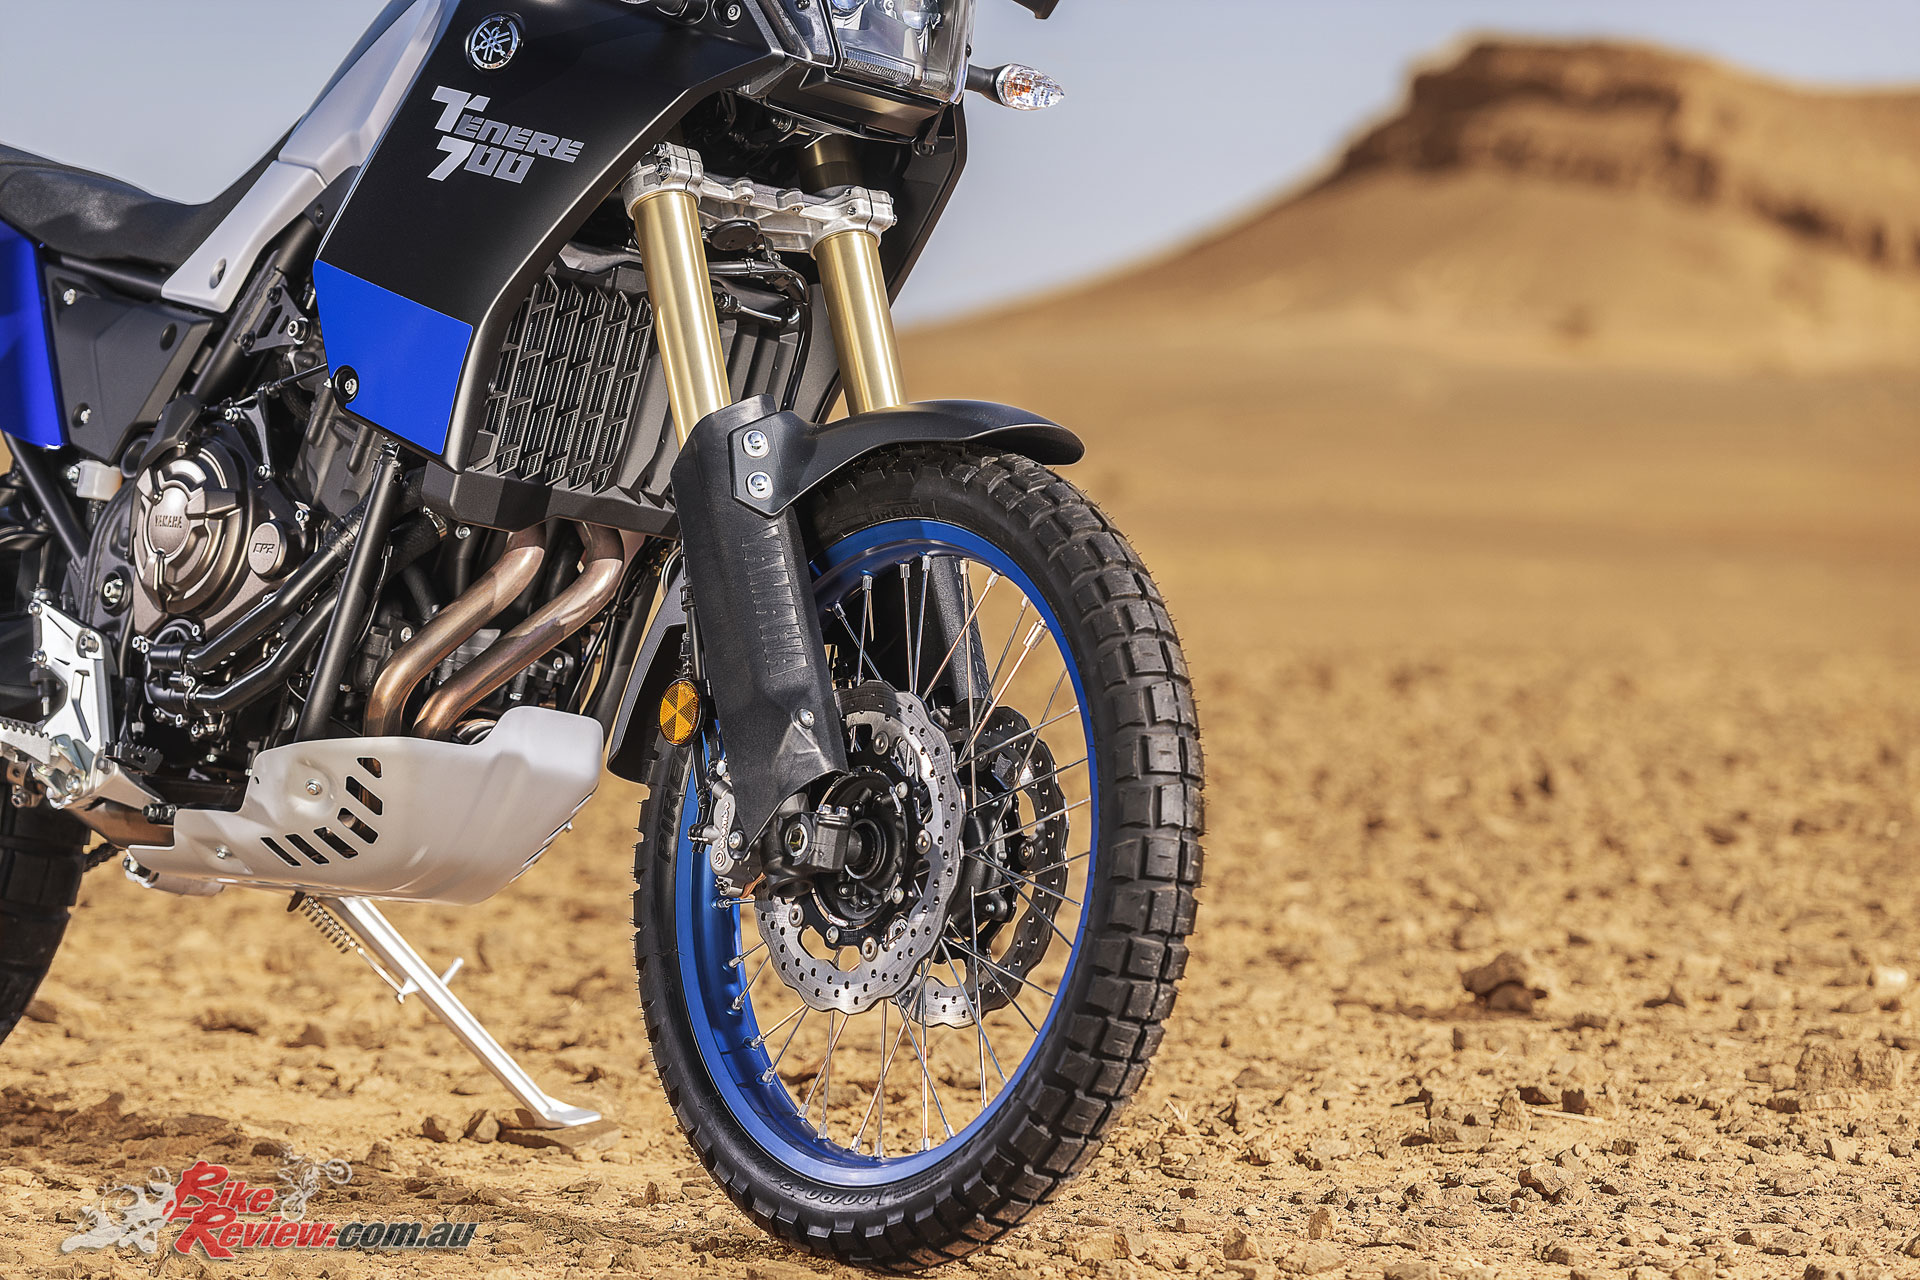 2019 Yamaha Tenere 700 - 43mm long travel forks